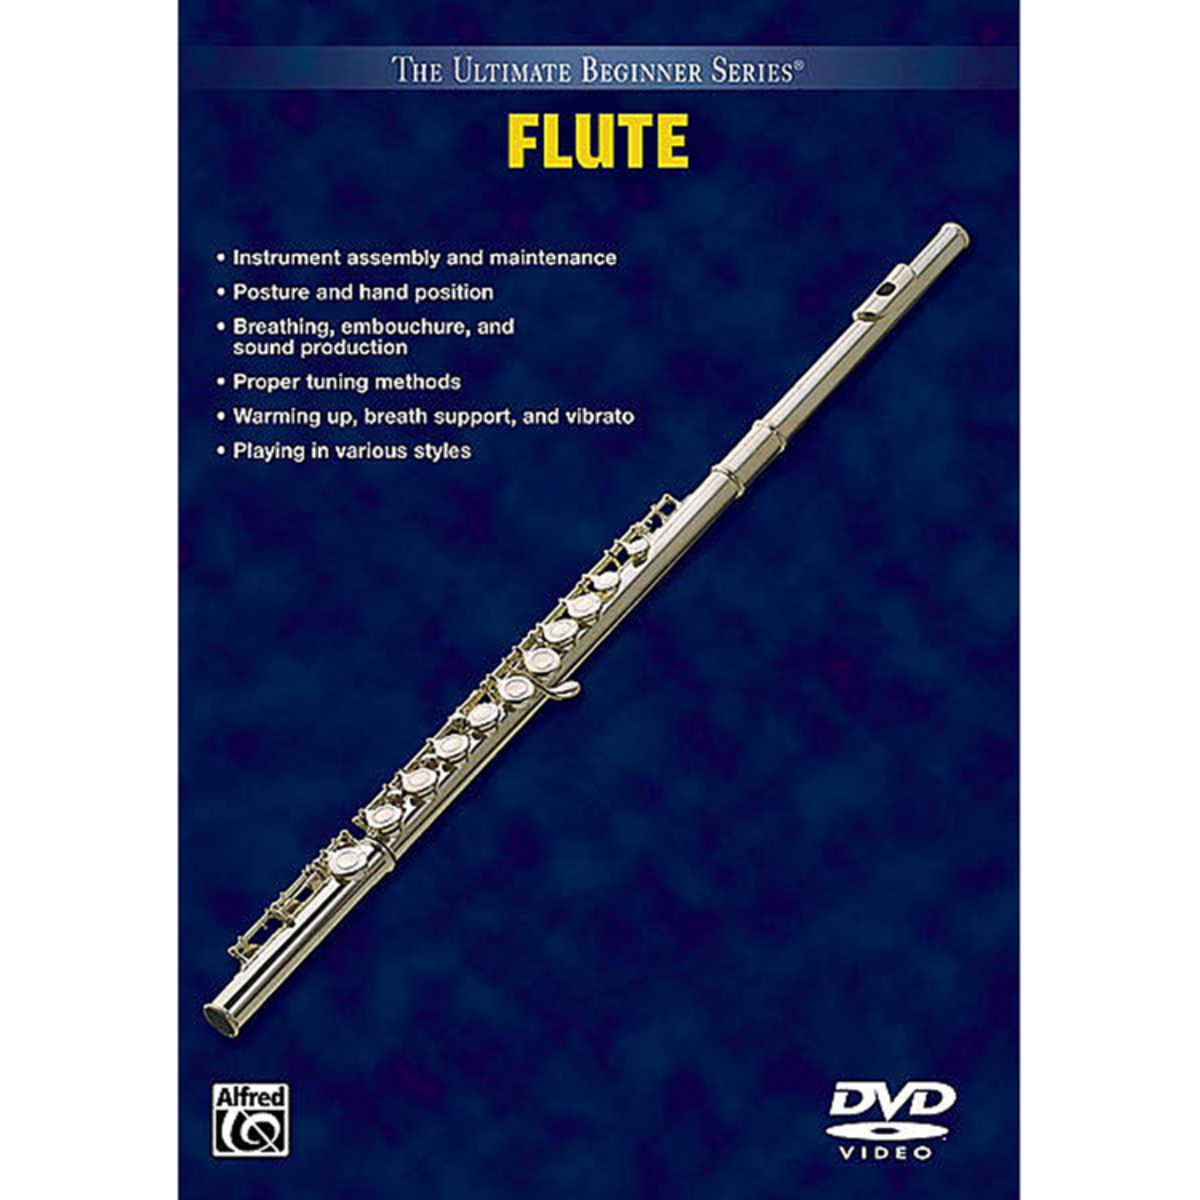 Image of Ultimate Beginners Flute DVD